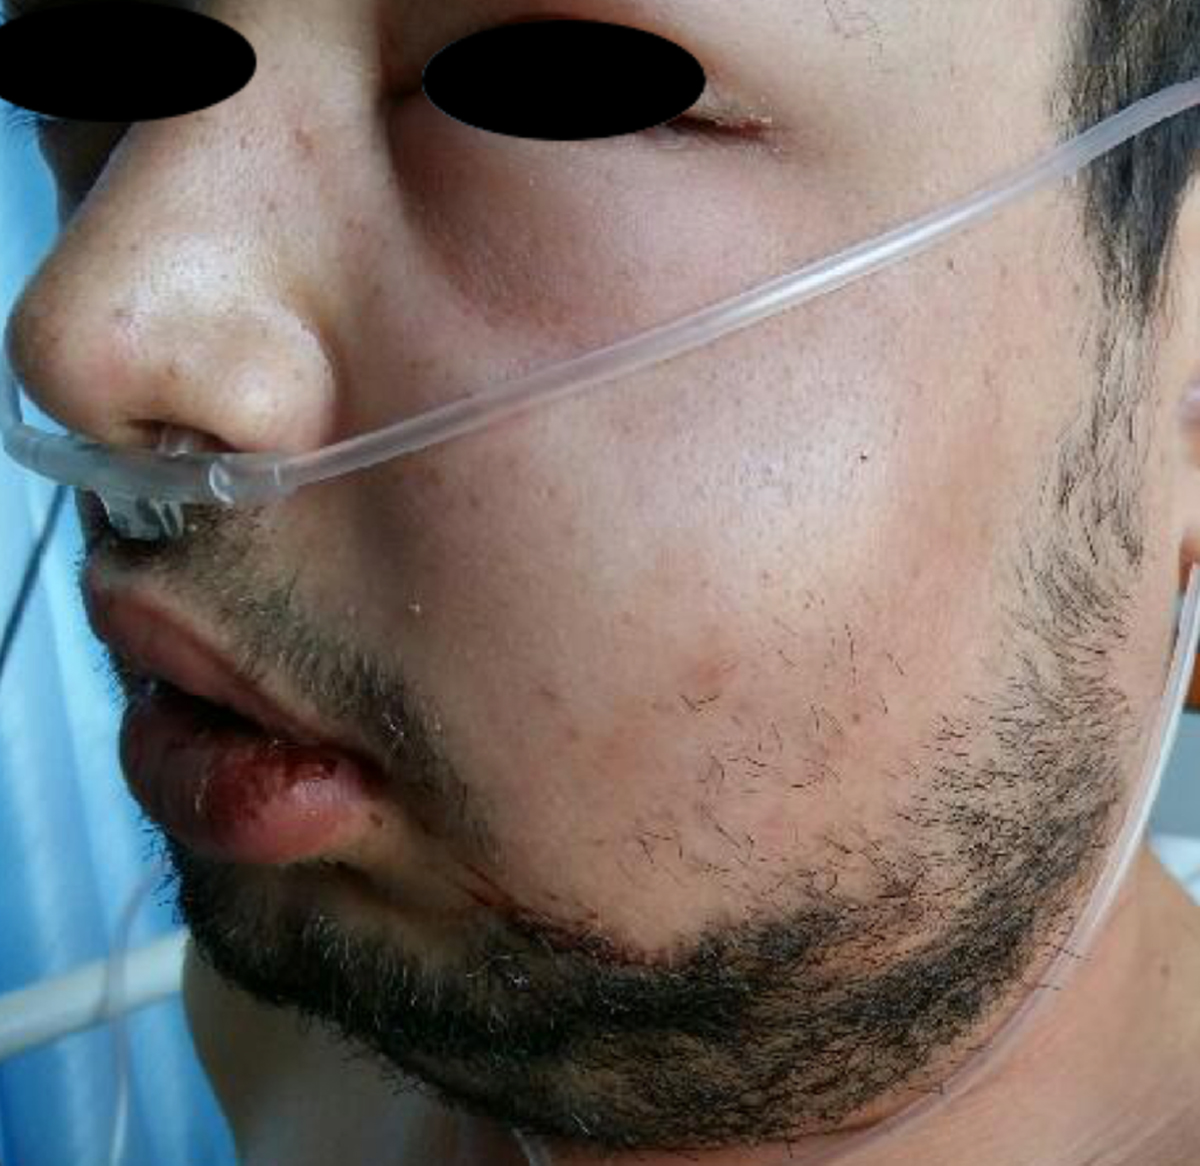 Congratulate, seems Treatment of facial cellulitis